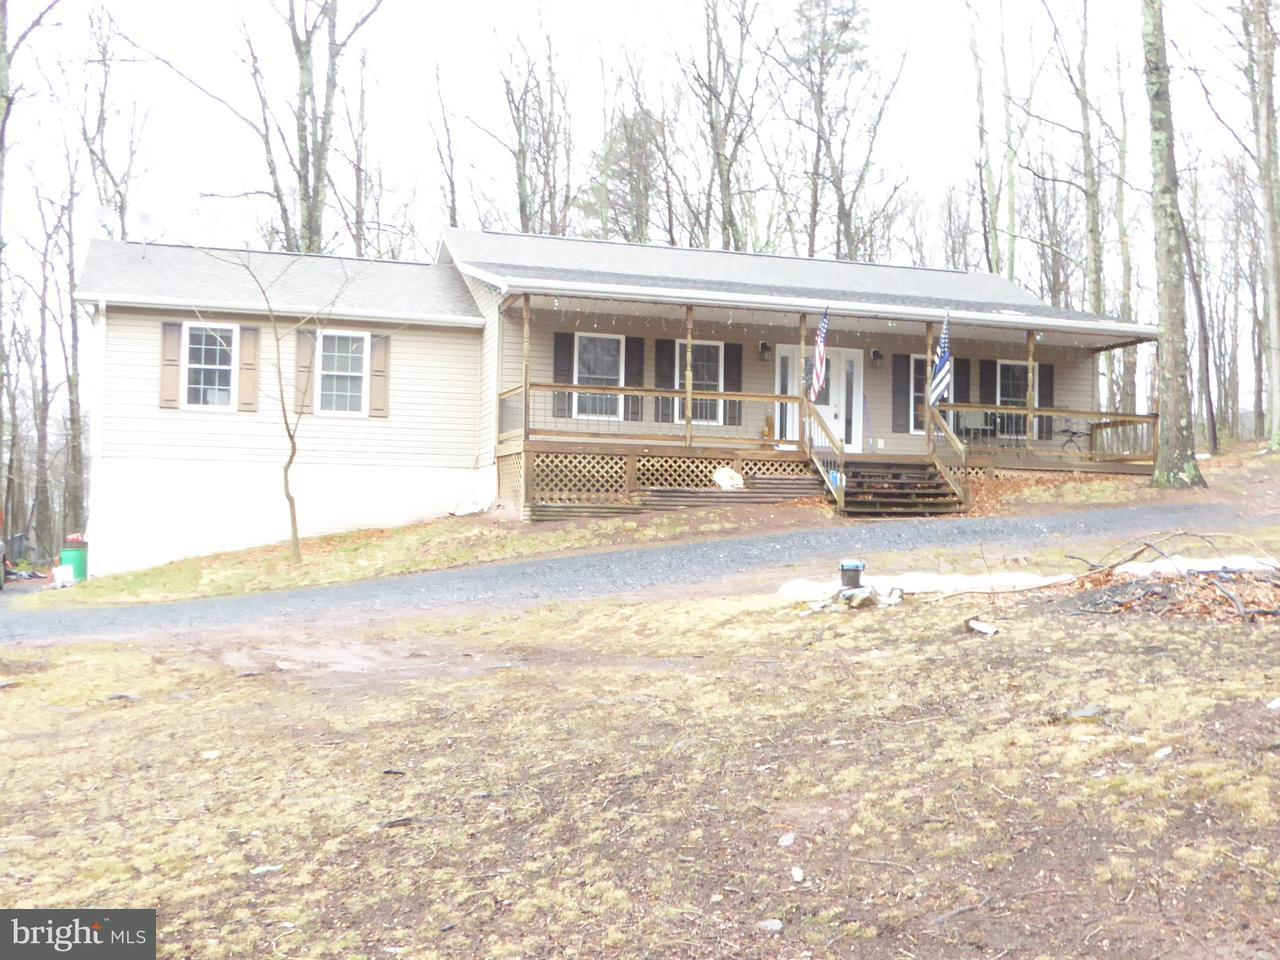 Local Real Estate: Homes for Sale — Romney, WV — Coldwell Banker